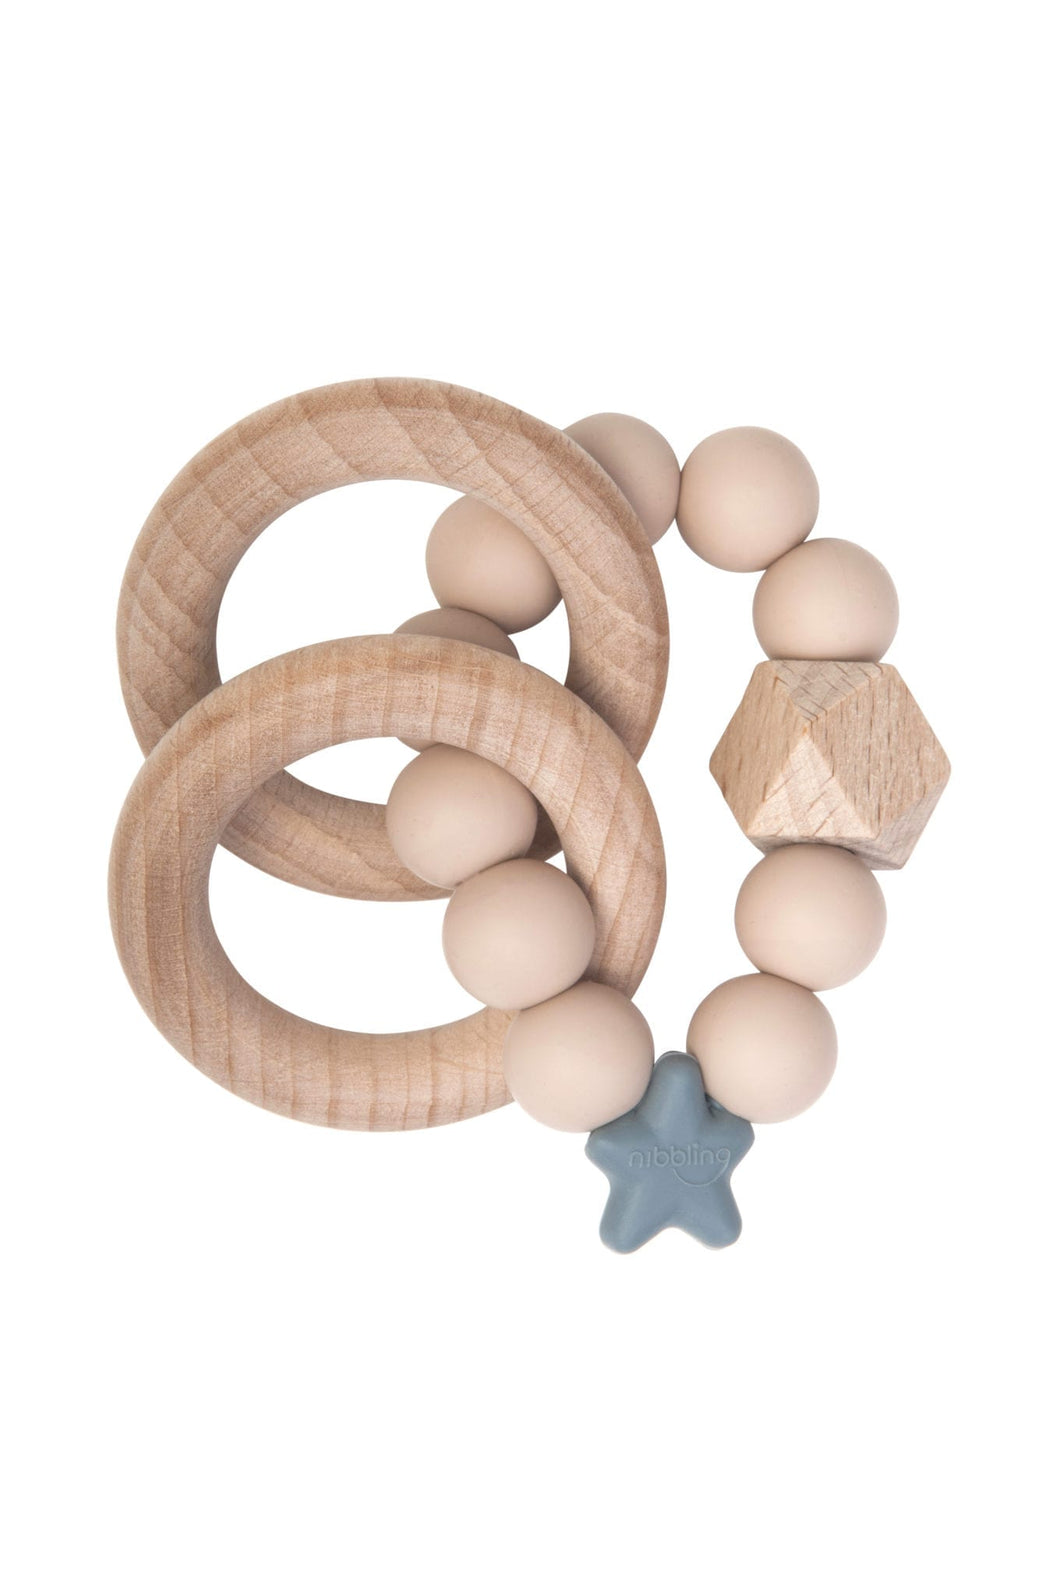 Nibbling Stellar Natural Wood Teething Toy – Oat